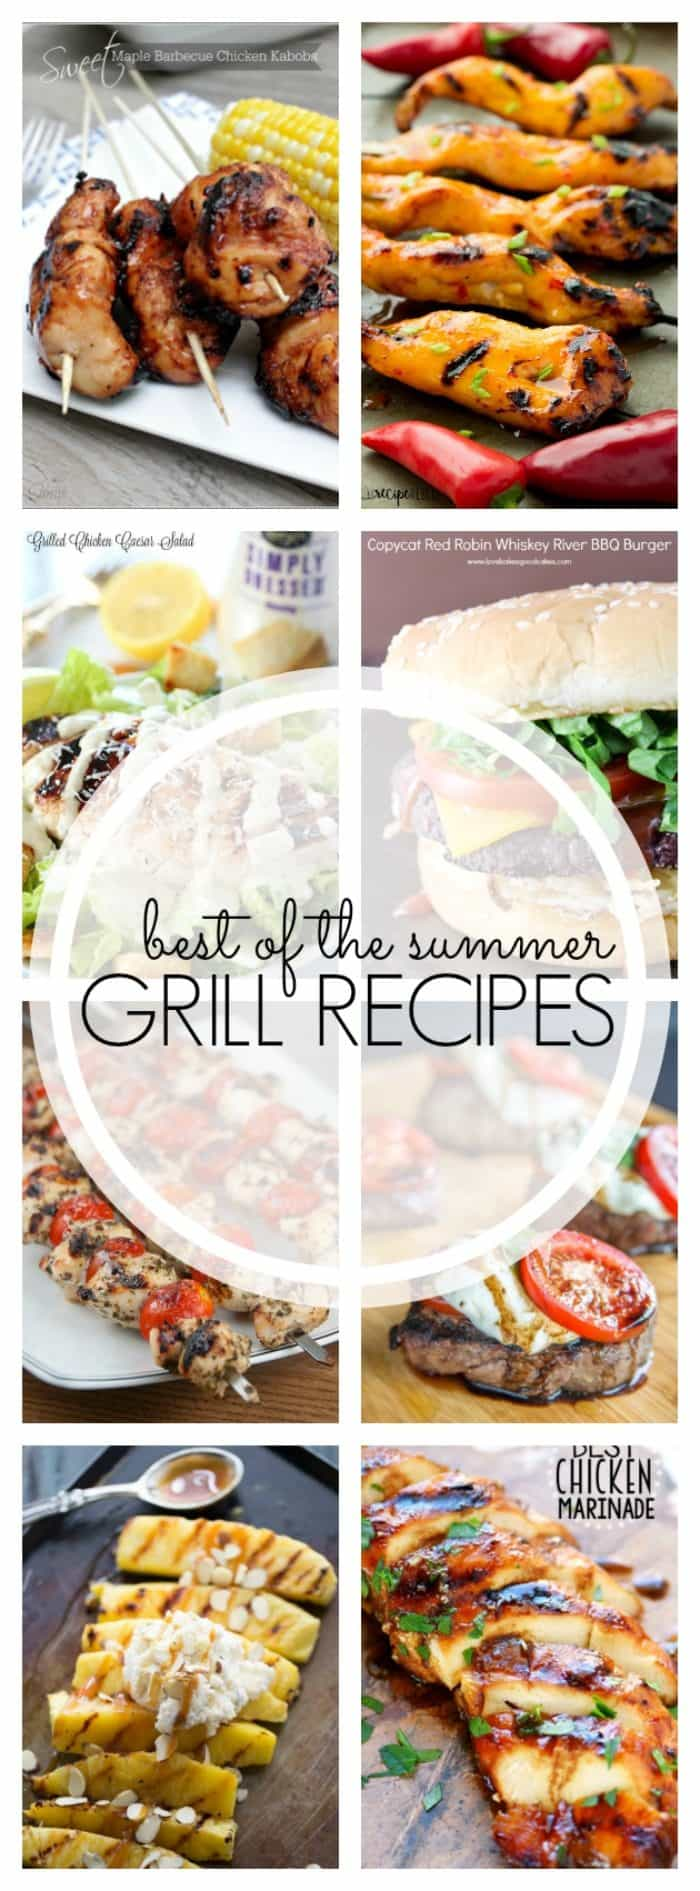 Grill recipes for summer!  These recipes feature fresh flavors that only summer can bring!